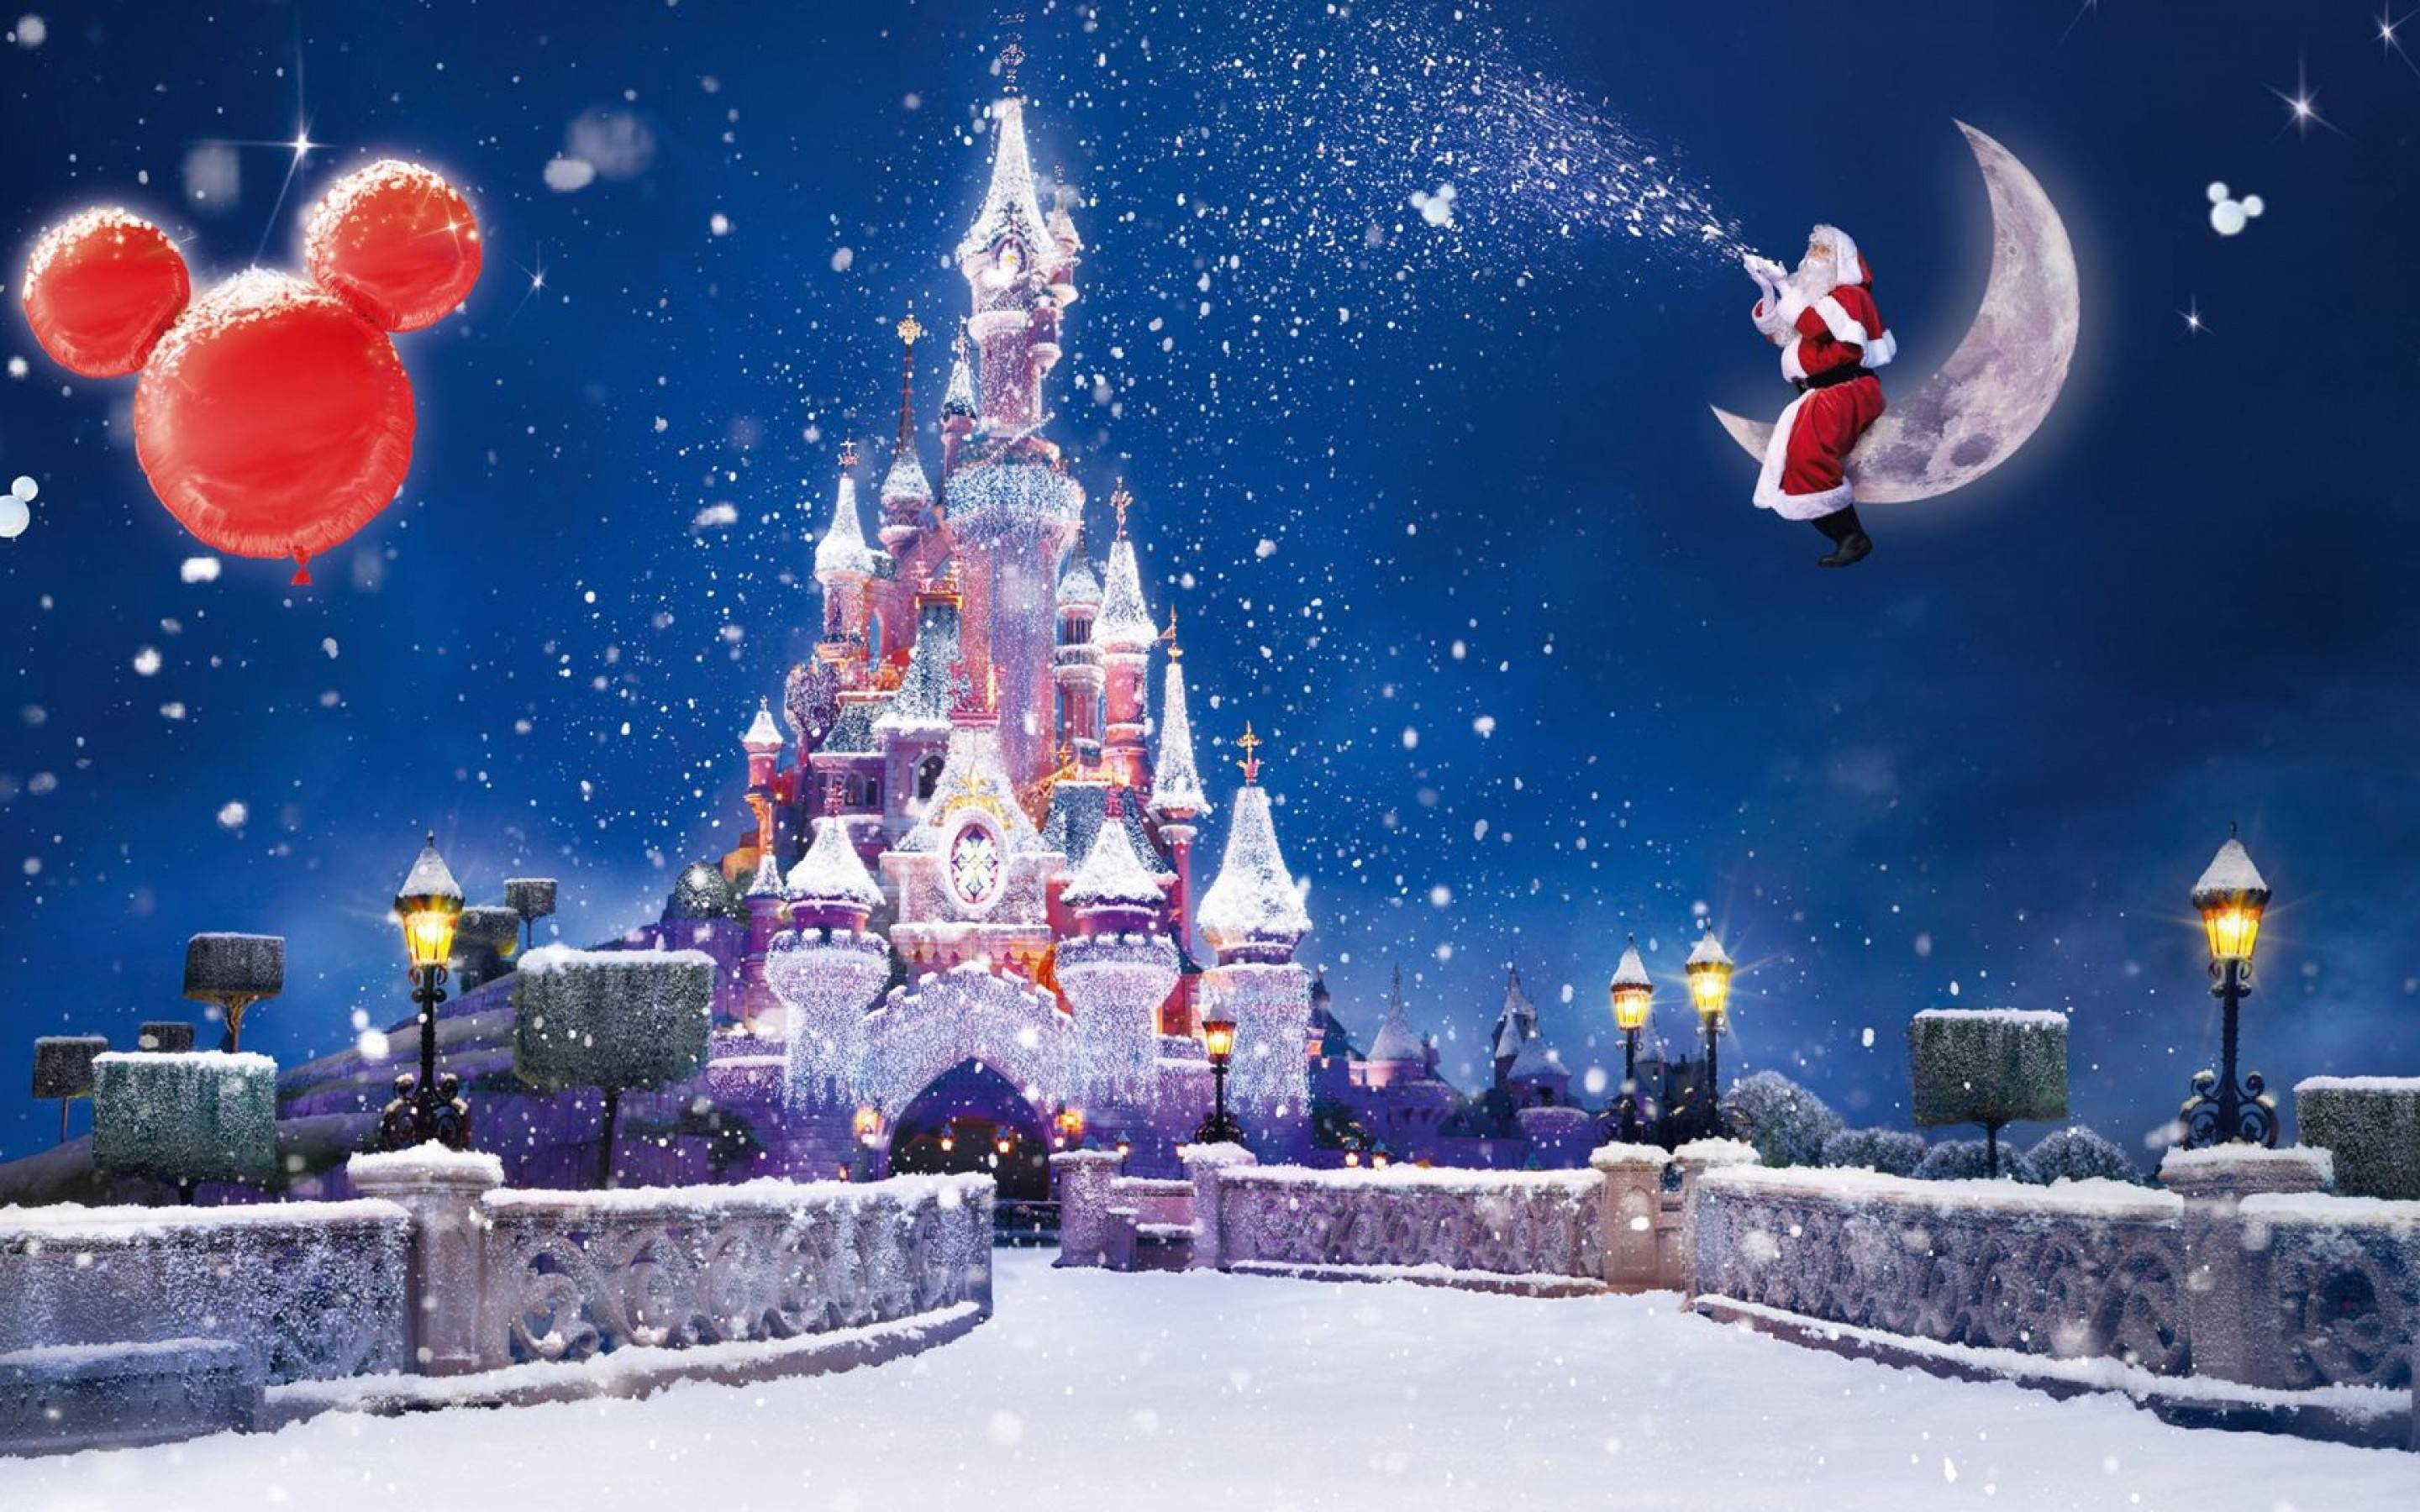 Christmas Background Hd.Disney Christmas Backgrounds Wallpaper Cave